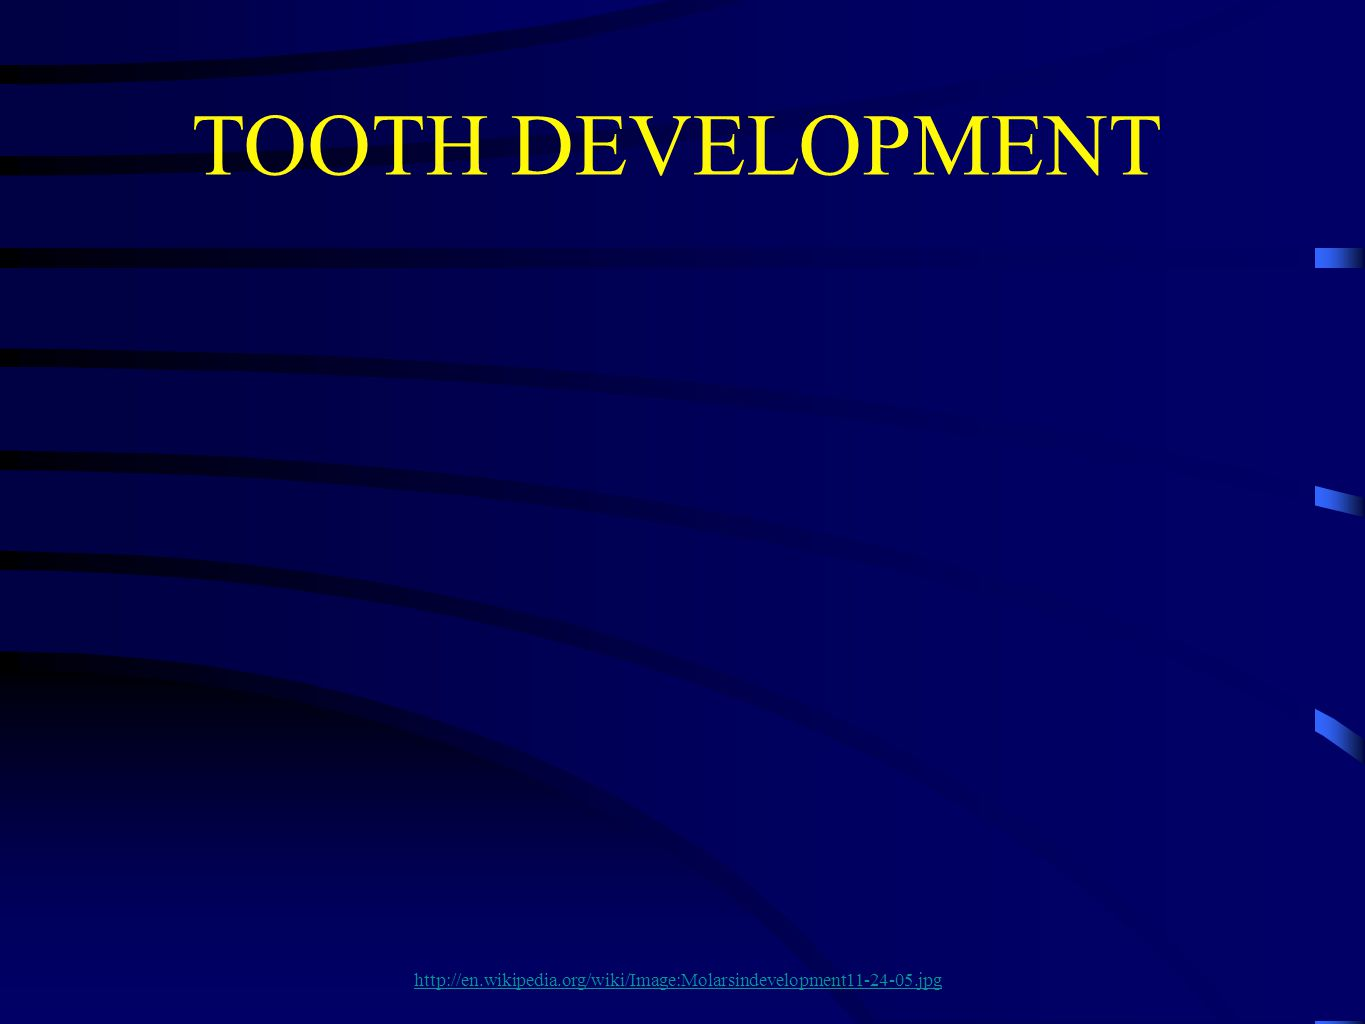 7 There are a number of terminologies that are used to describe the early development of teeth prior to the cap stage.